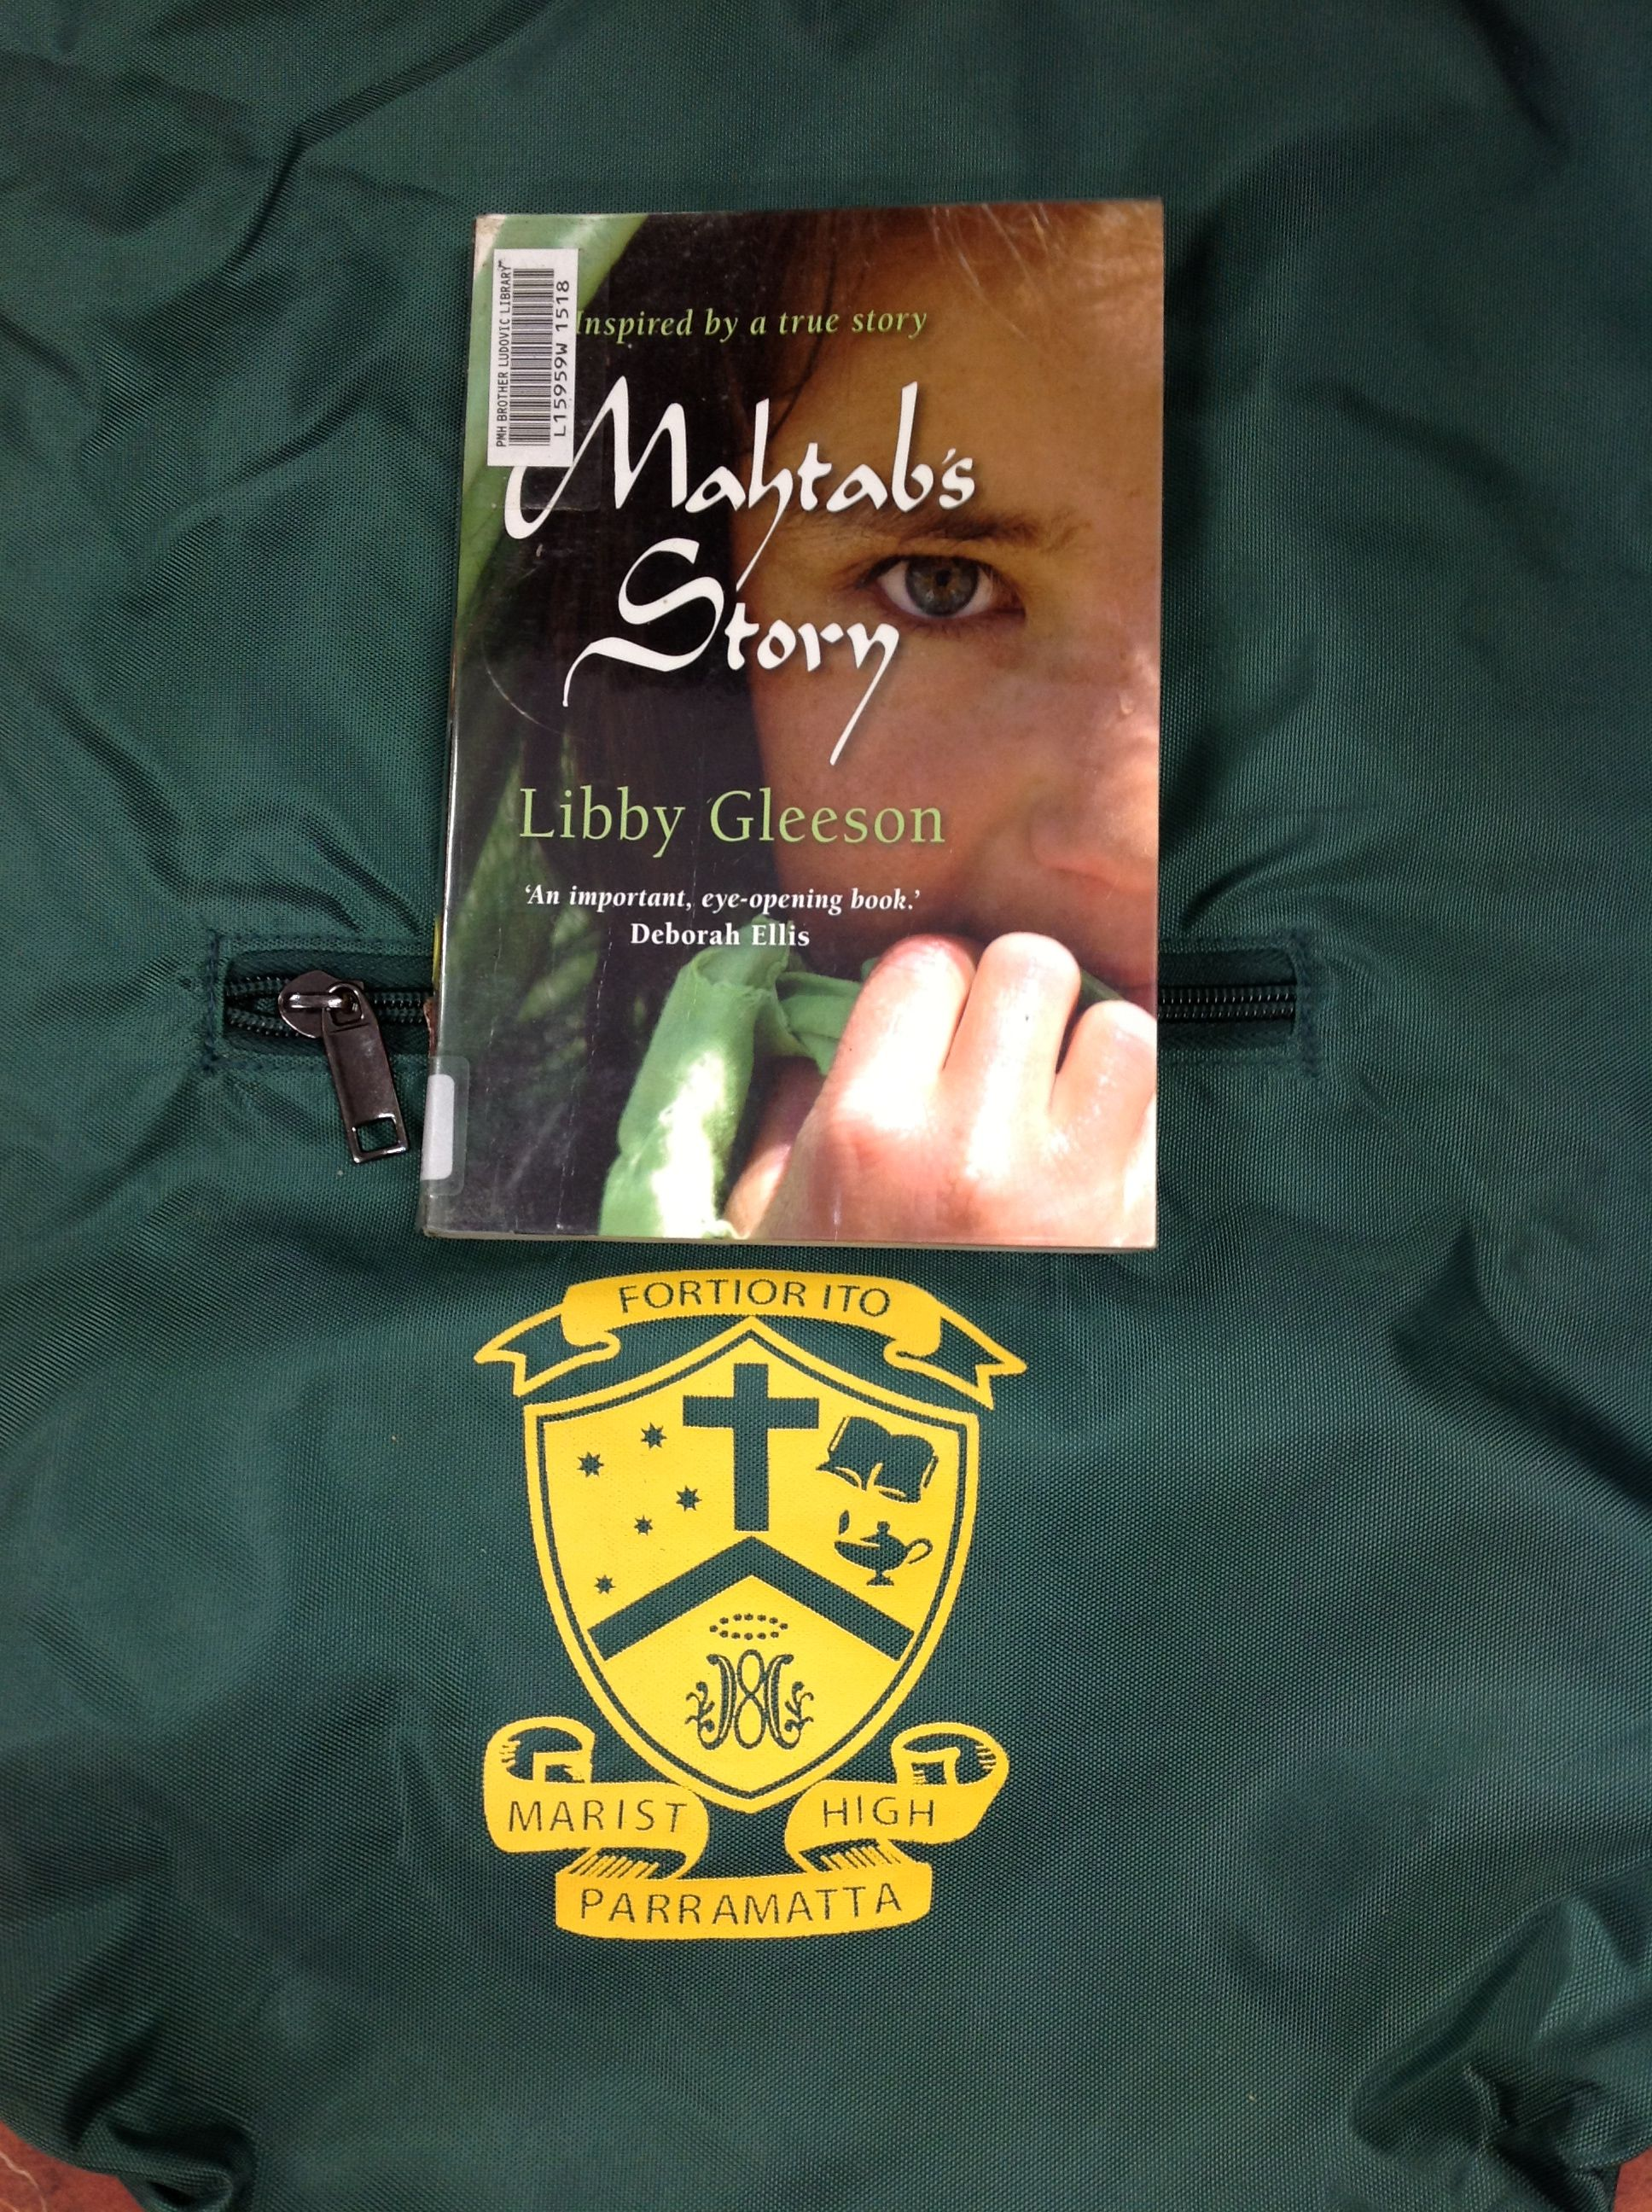 mahtabs story essay B o o k p u b l i s h e r s teachers notes by dr susan la marca mahtab's  story by libby gleeson isbn 9781741753349 recommended for ages 9-13  yrs.